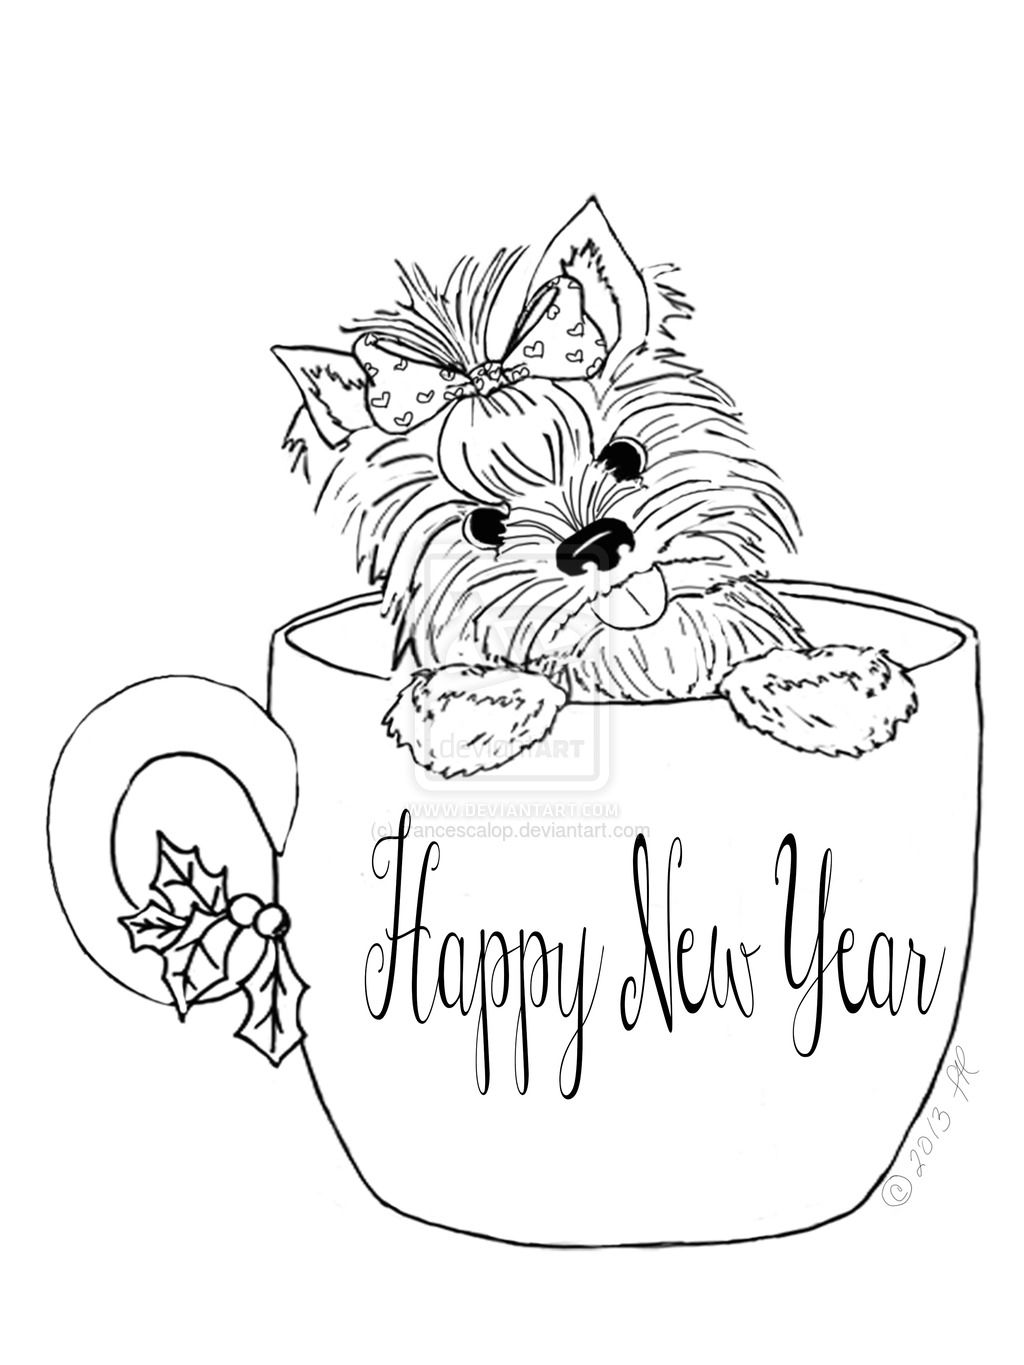 Yorkies Coloring Pages Ideas Puppy Coloring Pages Dog Coloring Page Coloring Pages [ 1365 x 1024 Pixel ]